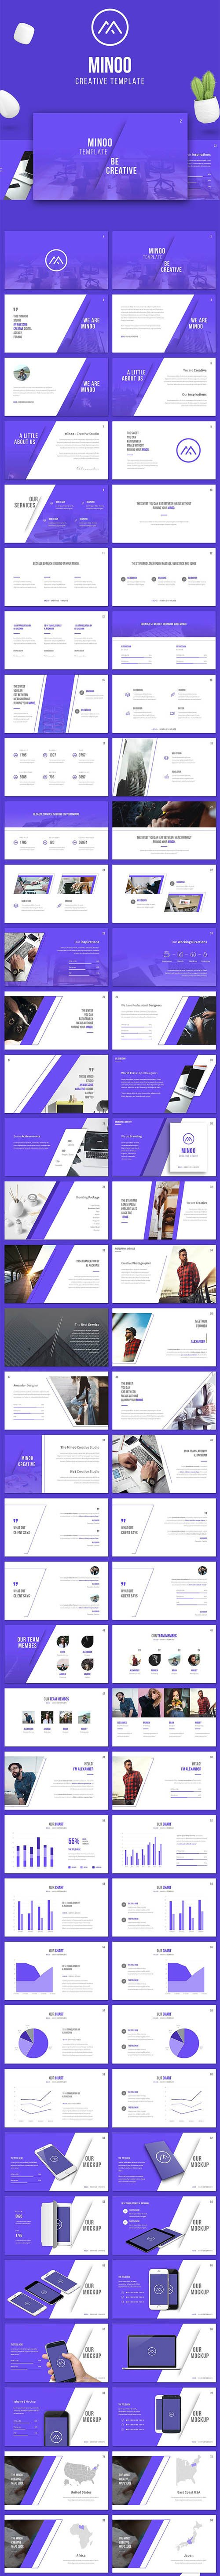 Creative Presentation Template for PowerPoint & Keynote (90+ Slides)